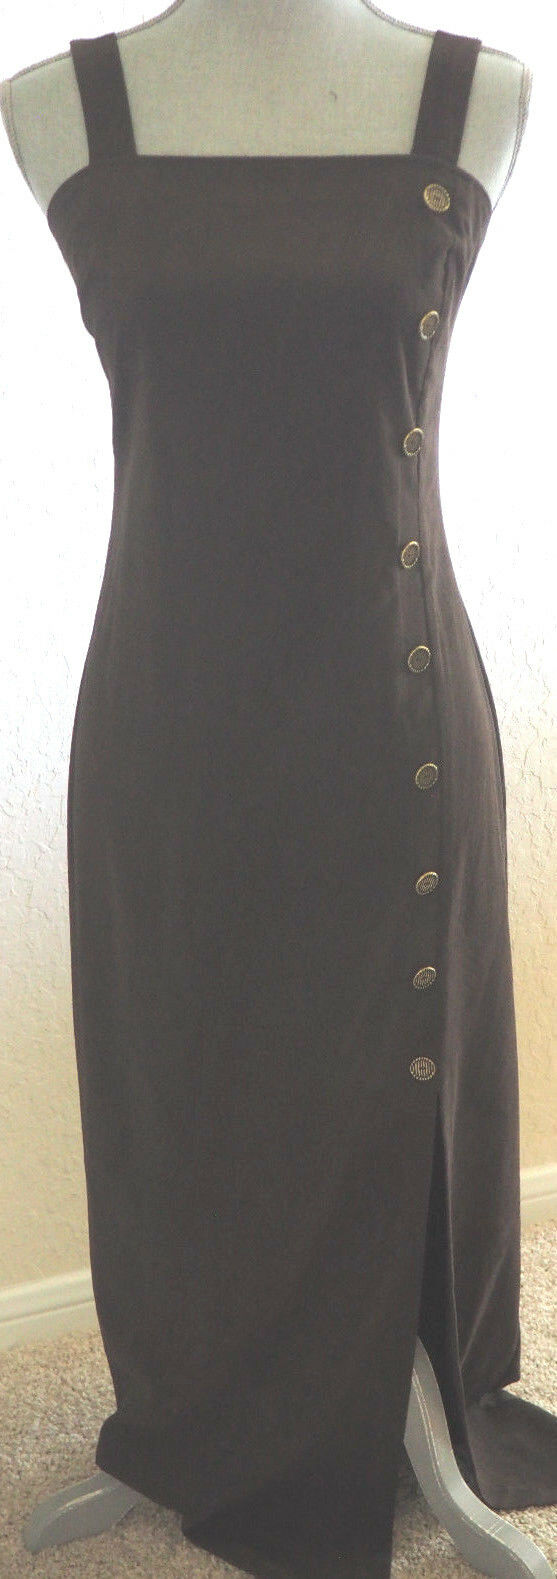 Vintage JOSEPH RIBKOFF braun Long Dress with Jacket - Decorative Buttons - 8